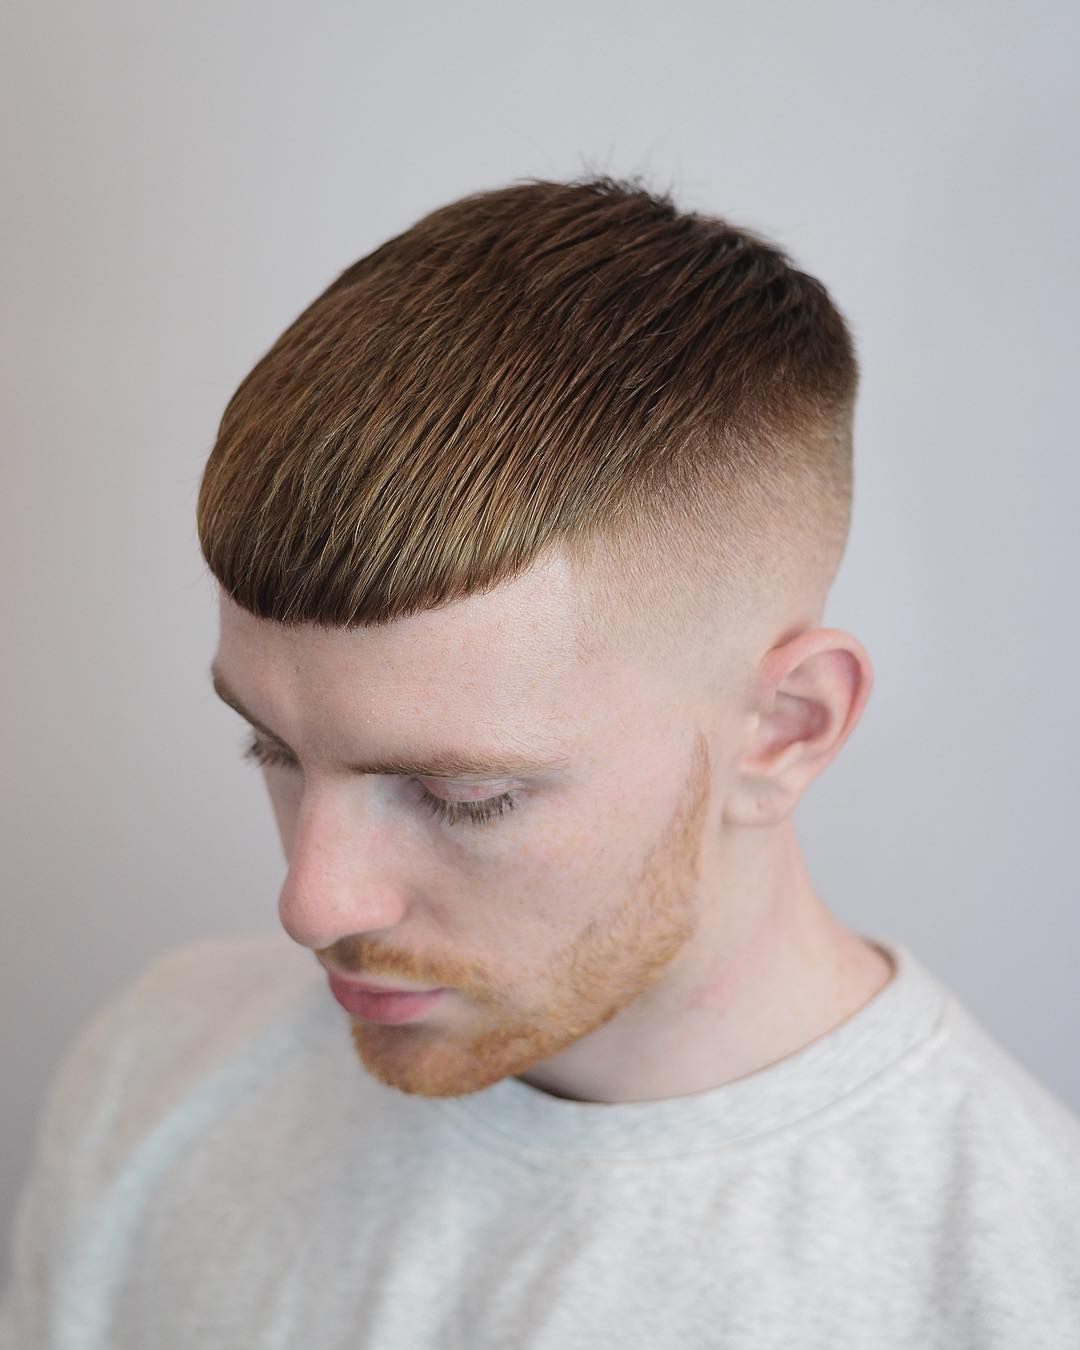 20 Fantastic Hairstyles For Men With Thin Hair Men S Hairstyles Crop Haircut Thin Hair Men Mens Hairstyles